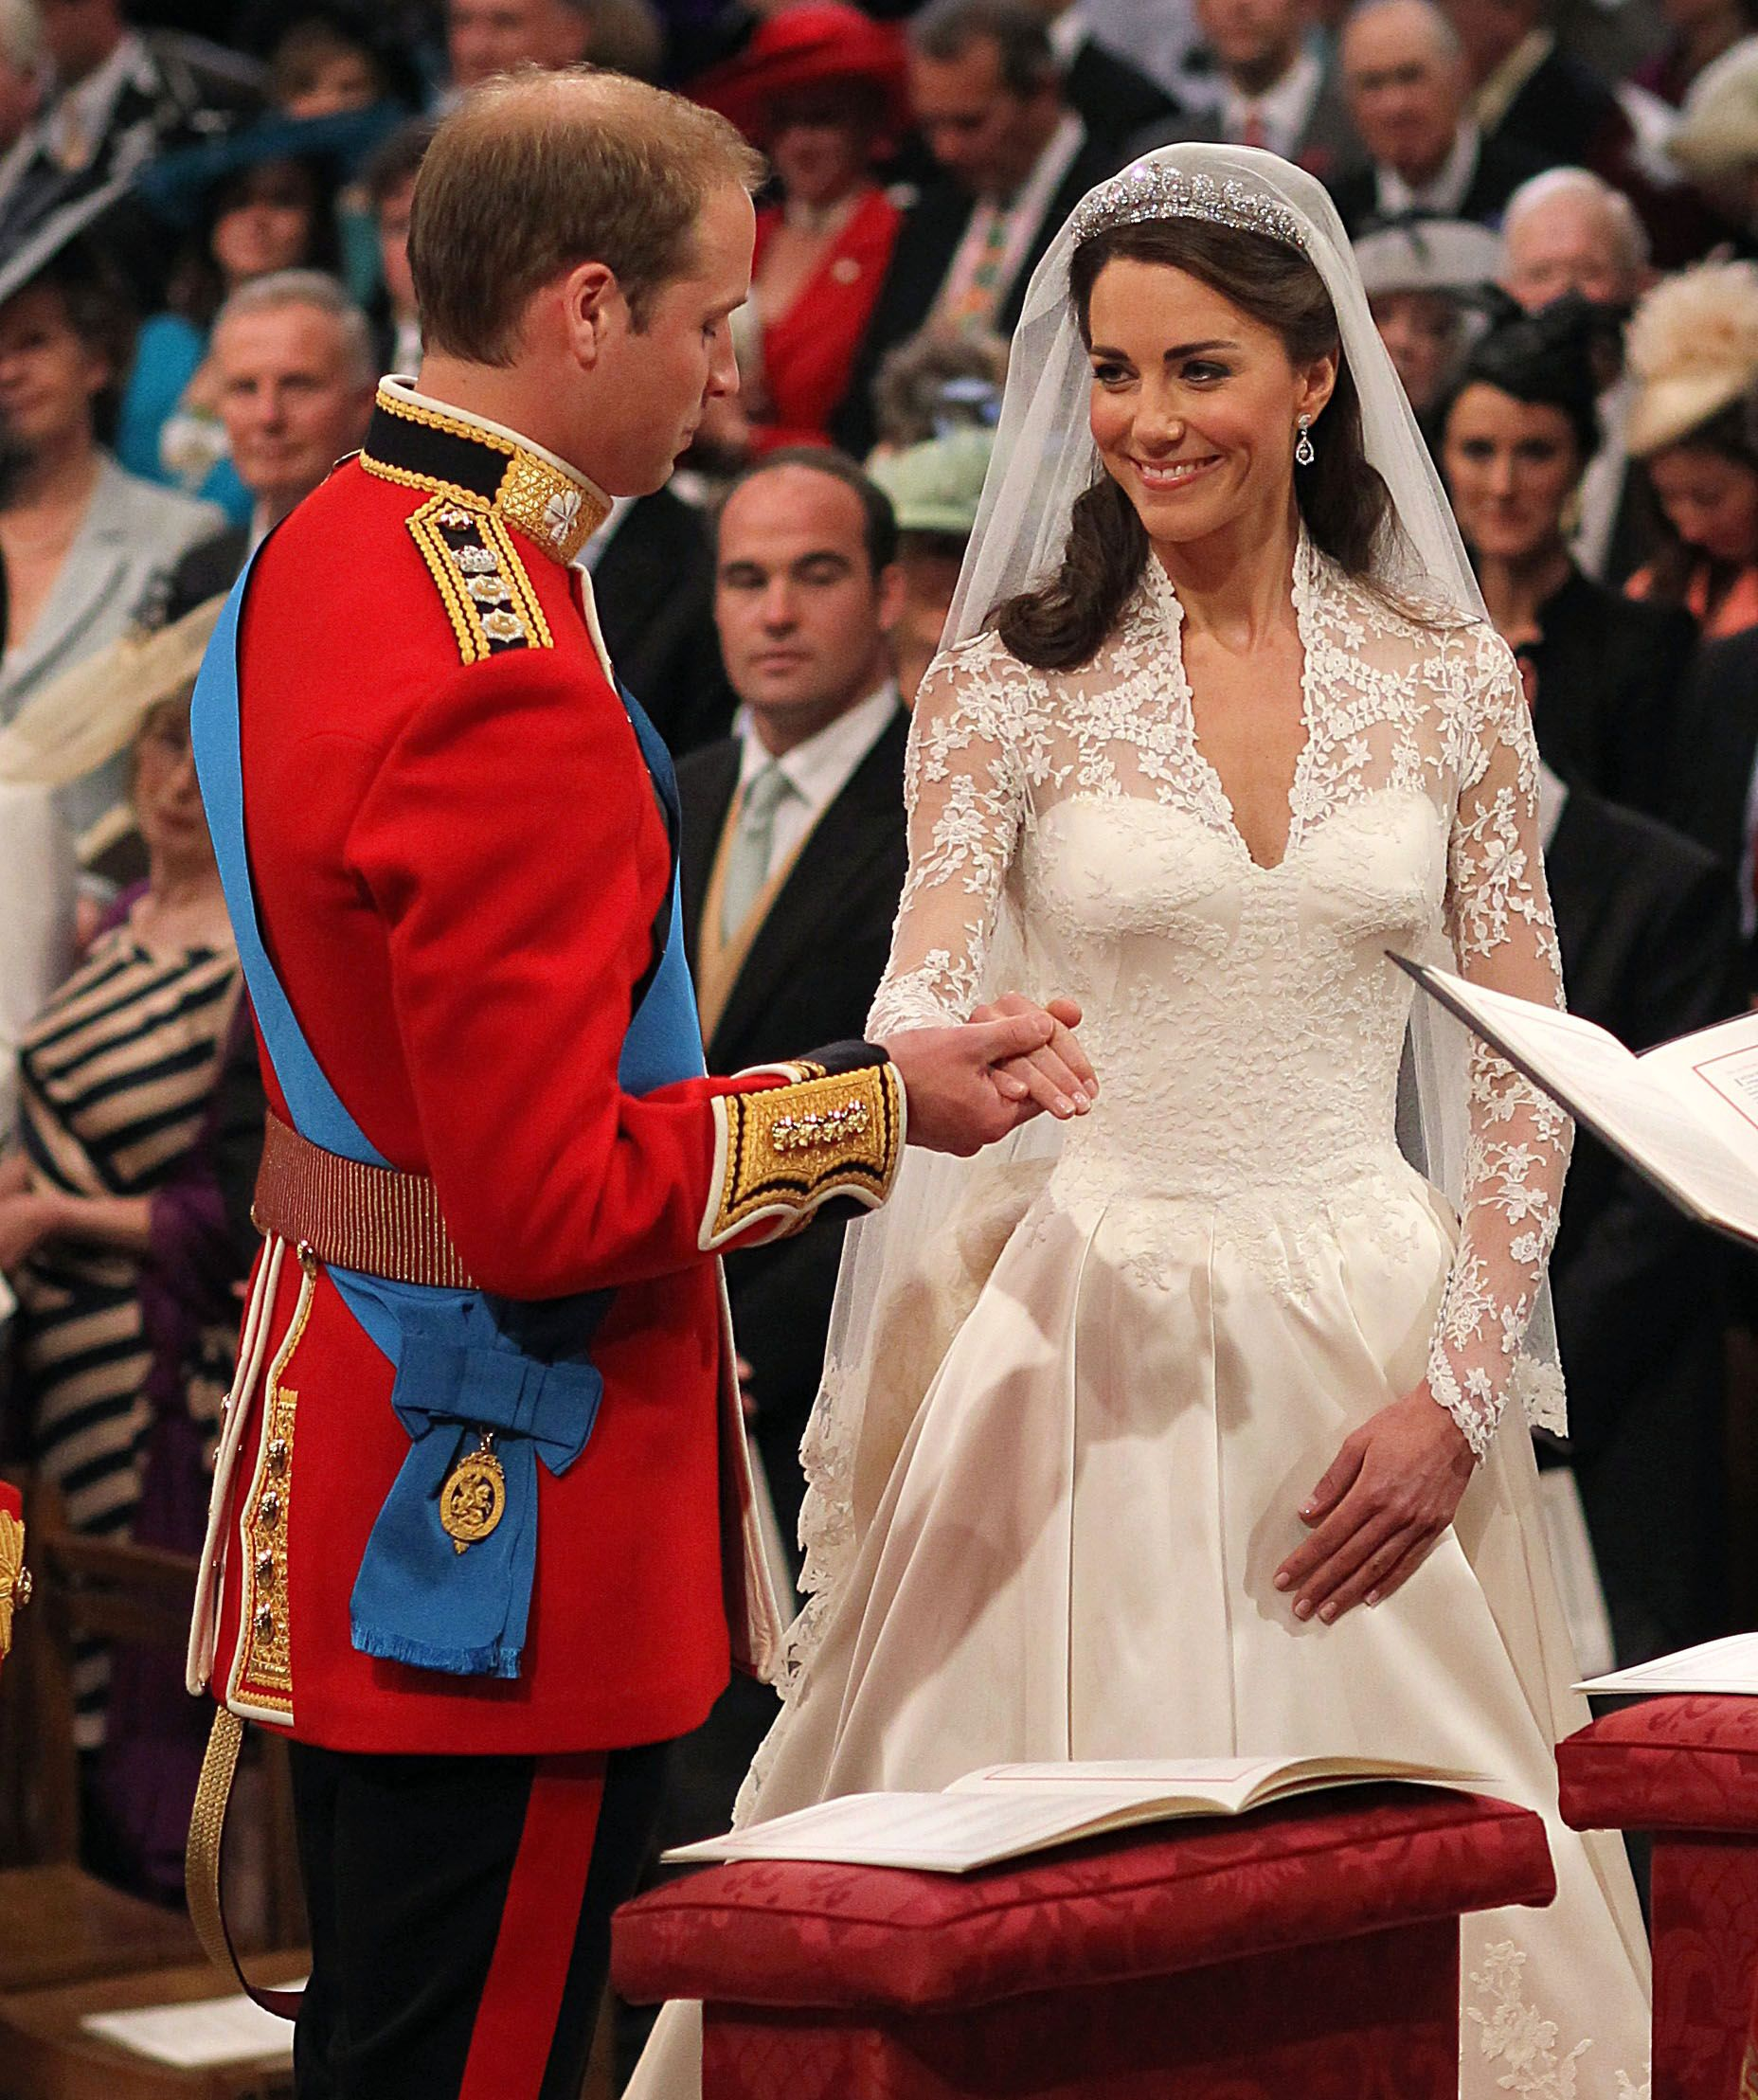 William and Kate - Dress by Sarah Burton at Alexander McQueen